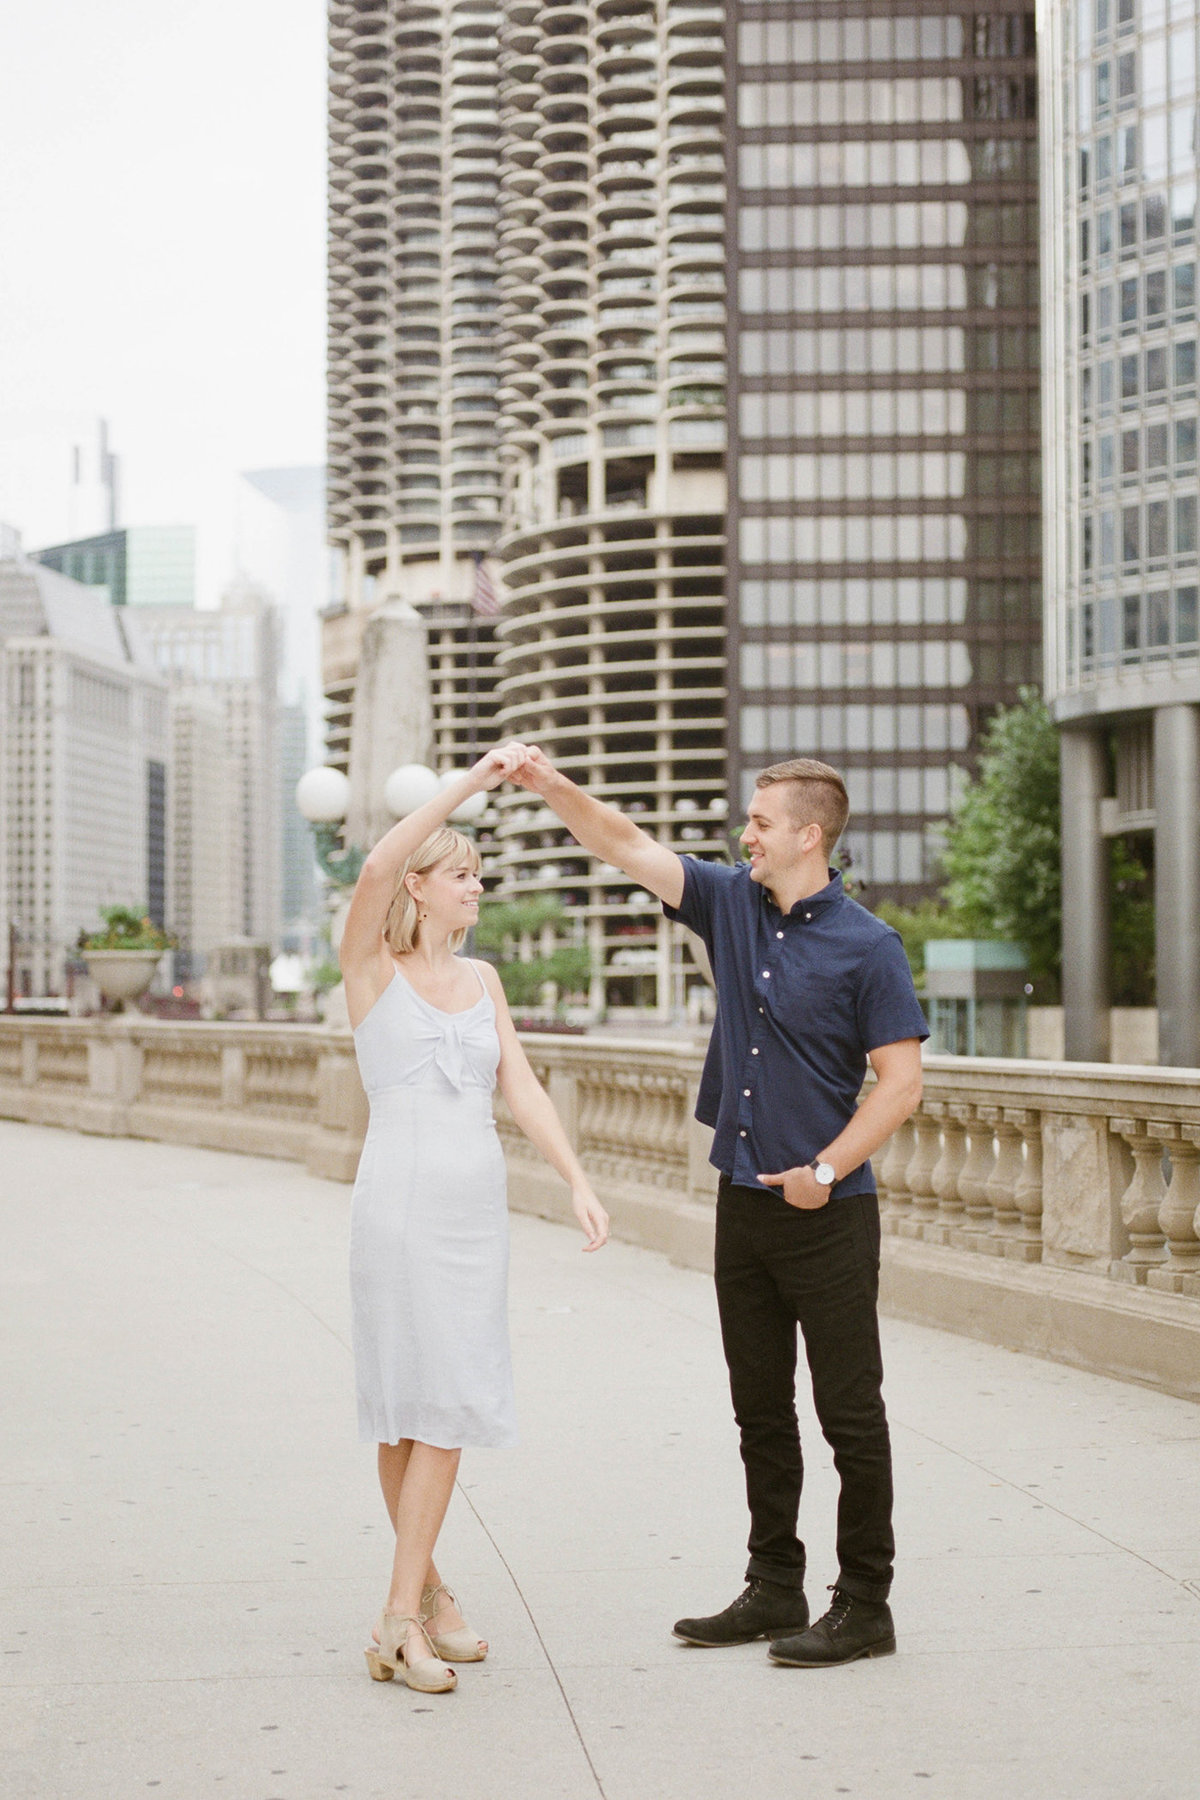 Chicago Wedding Photographer - Fine Art Film Photographer - Sarah Sunstrom - Sam + Morgan - Engagement Session - 32